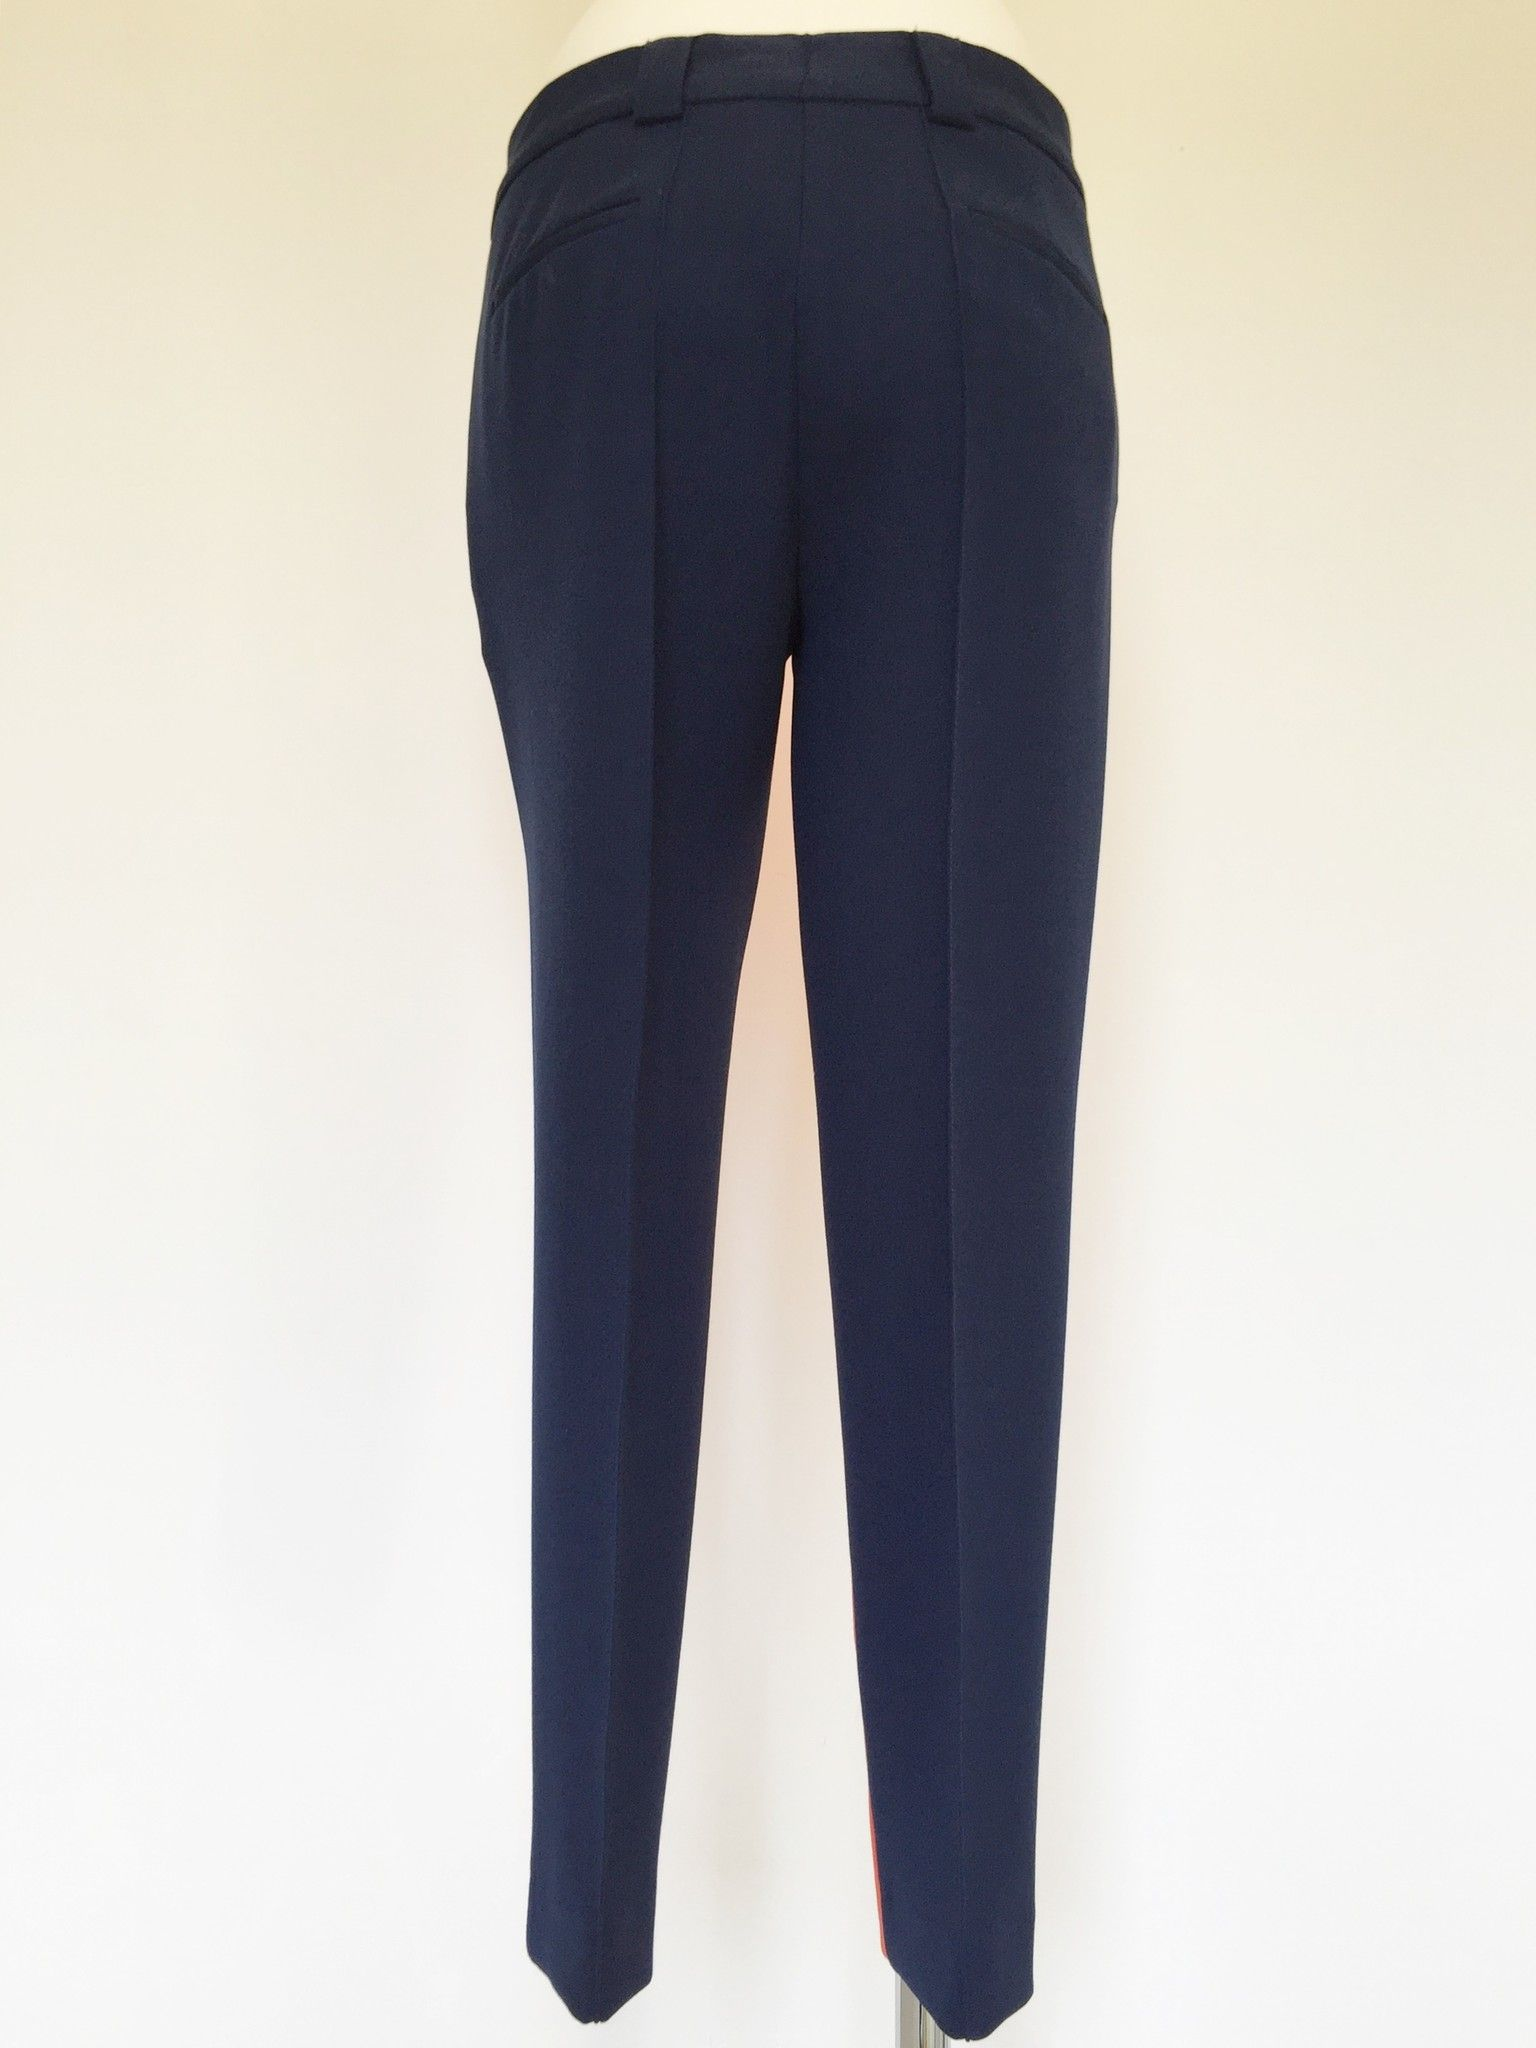 Space Capri Model Trousers Cod.AI154006